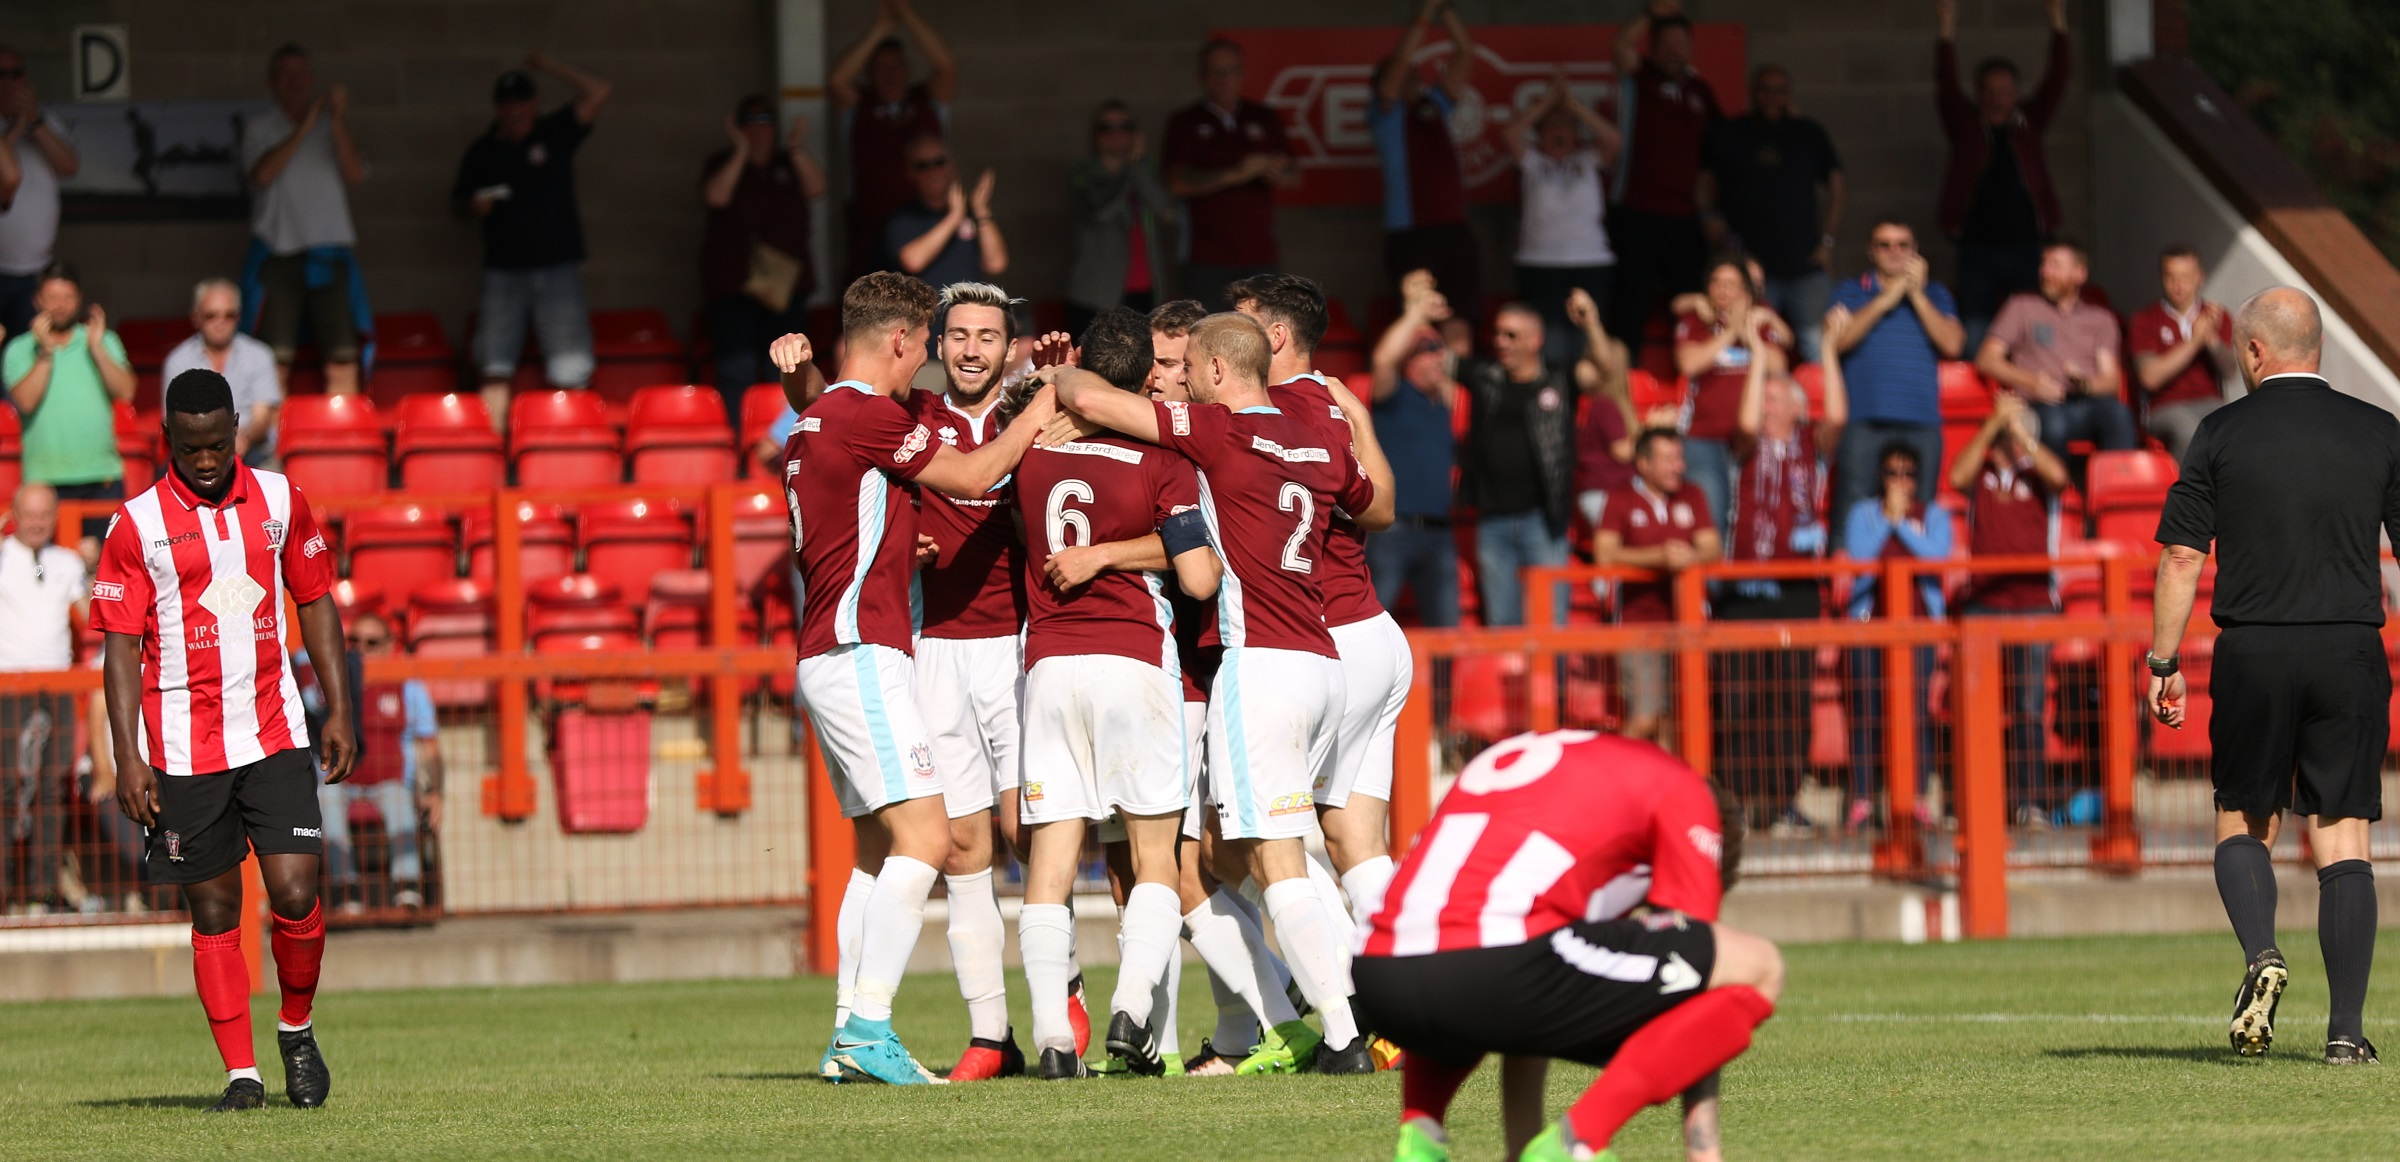 Witton Albion 0-2 South Shields: Holmes double secures cup progress